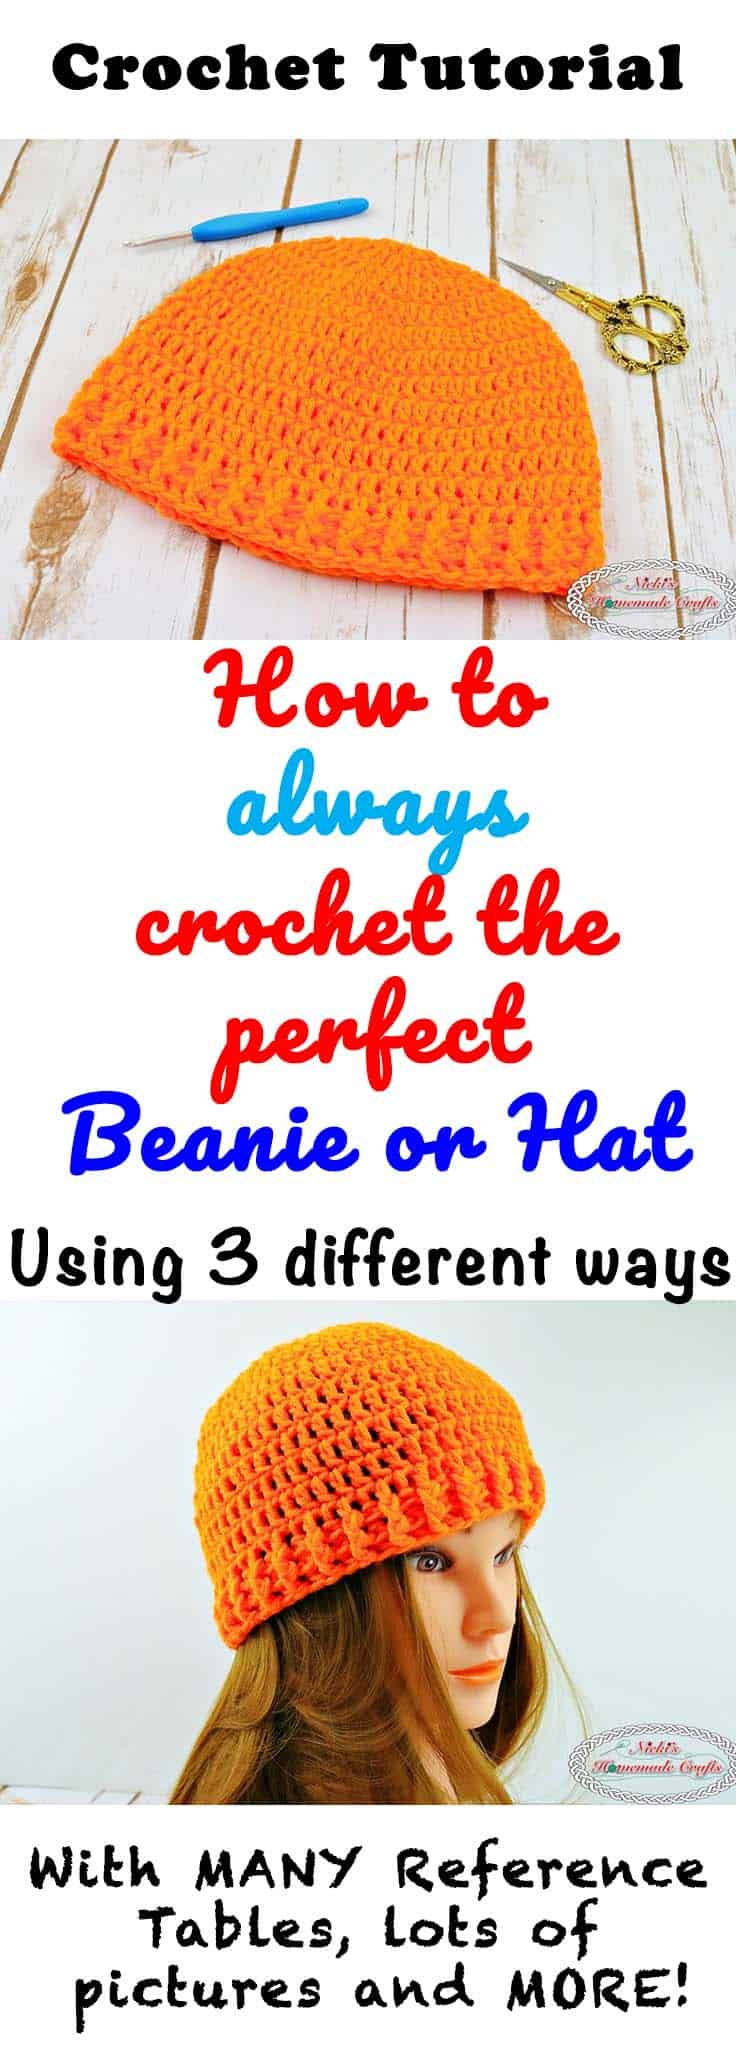 crochet the perfect beanie or hat